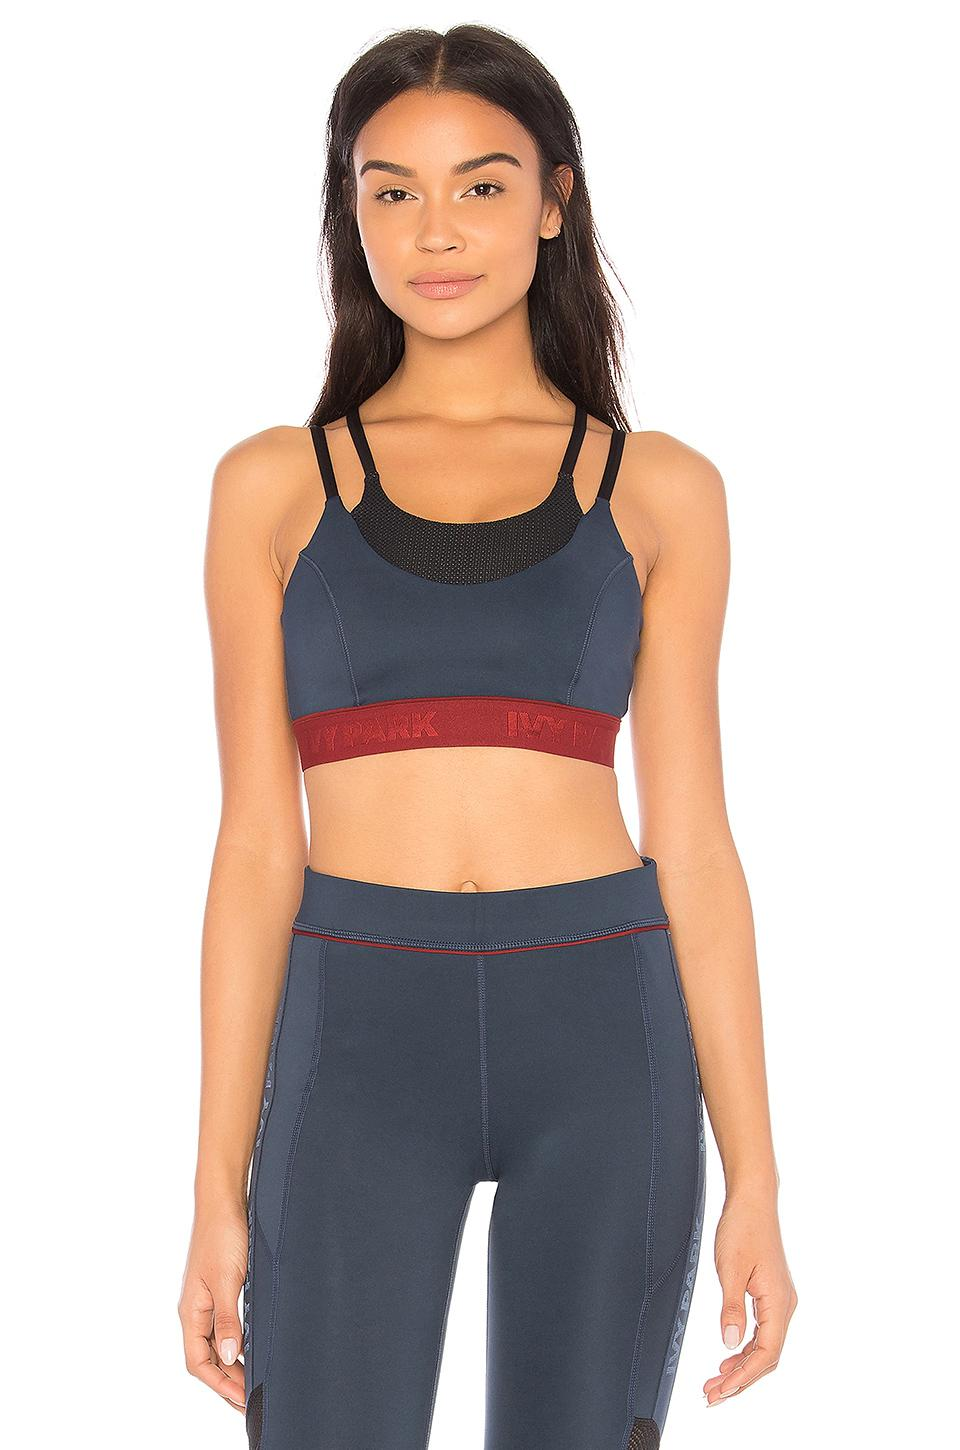 a75aac1150 Lyst - Ivy Park Color Block Sports Bra in Blue